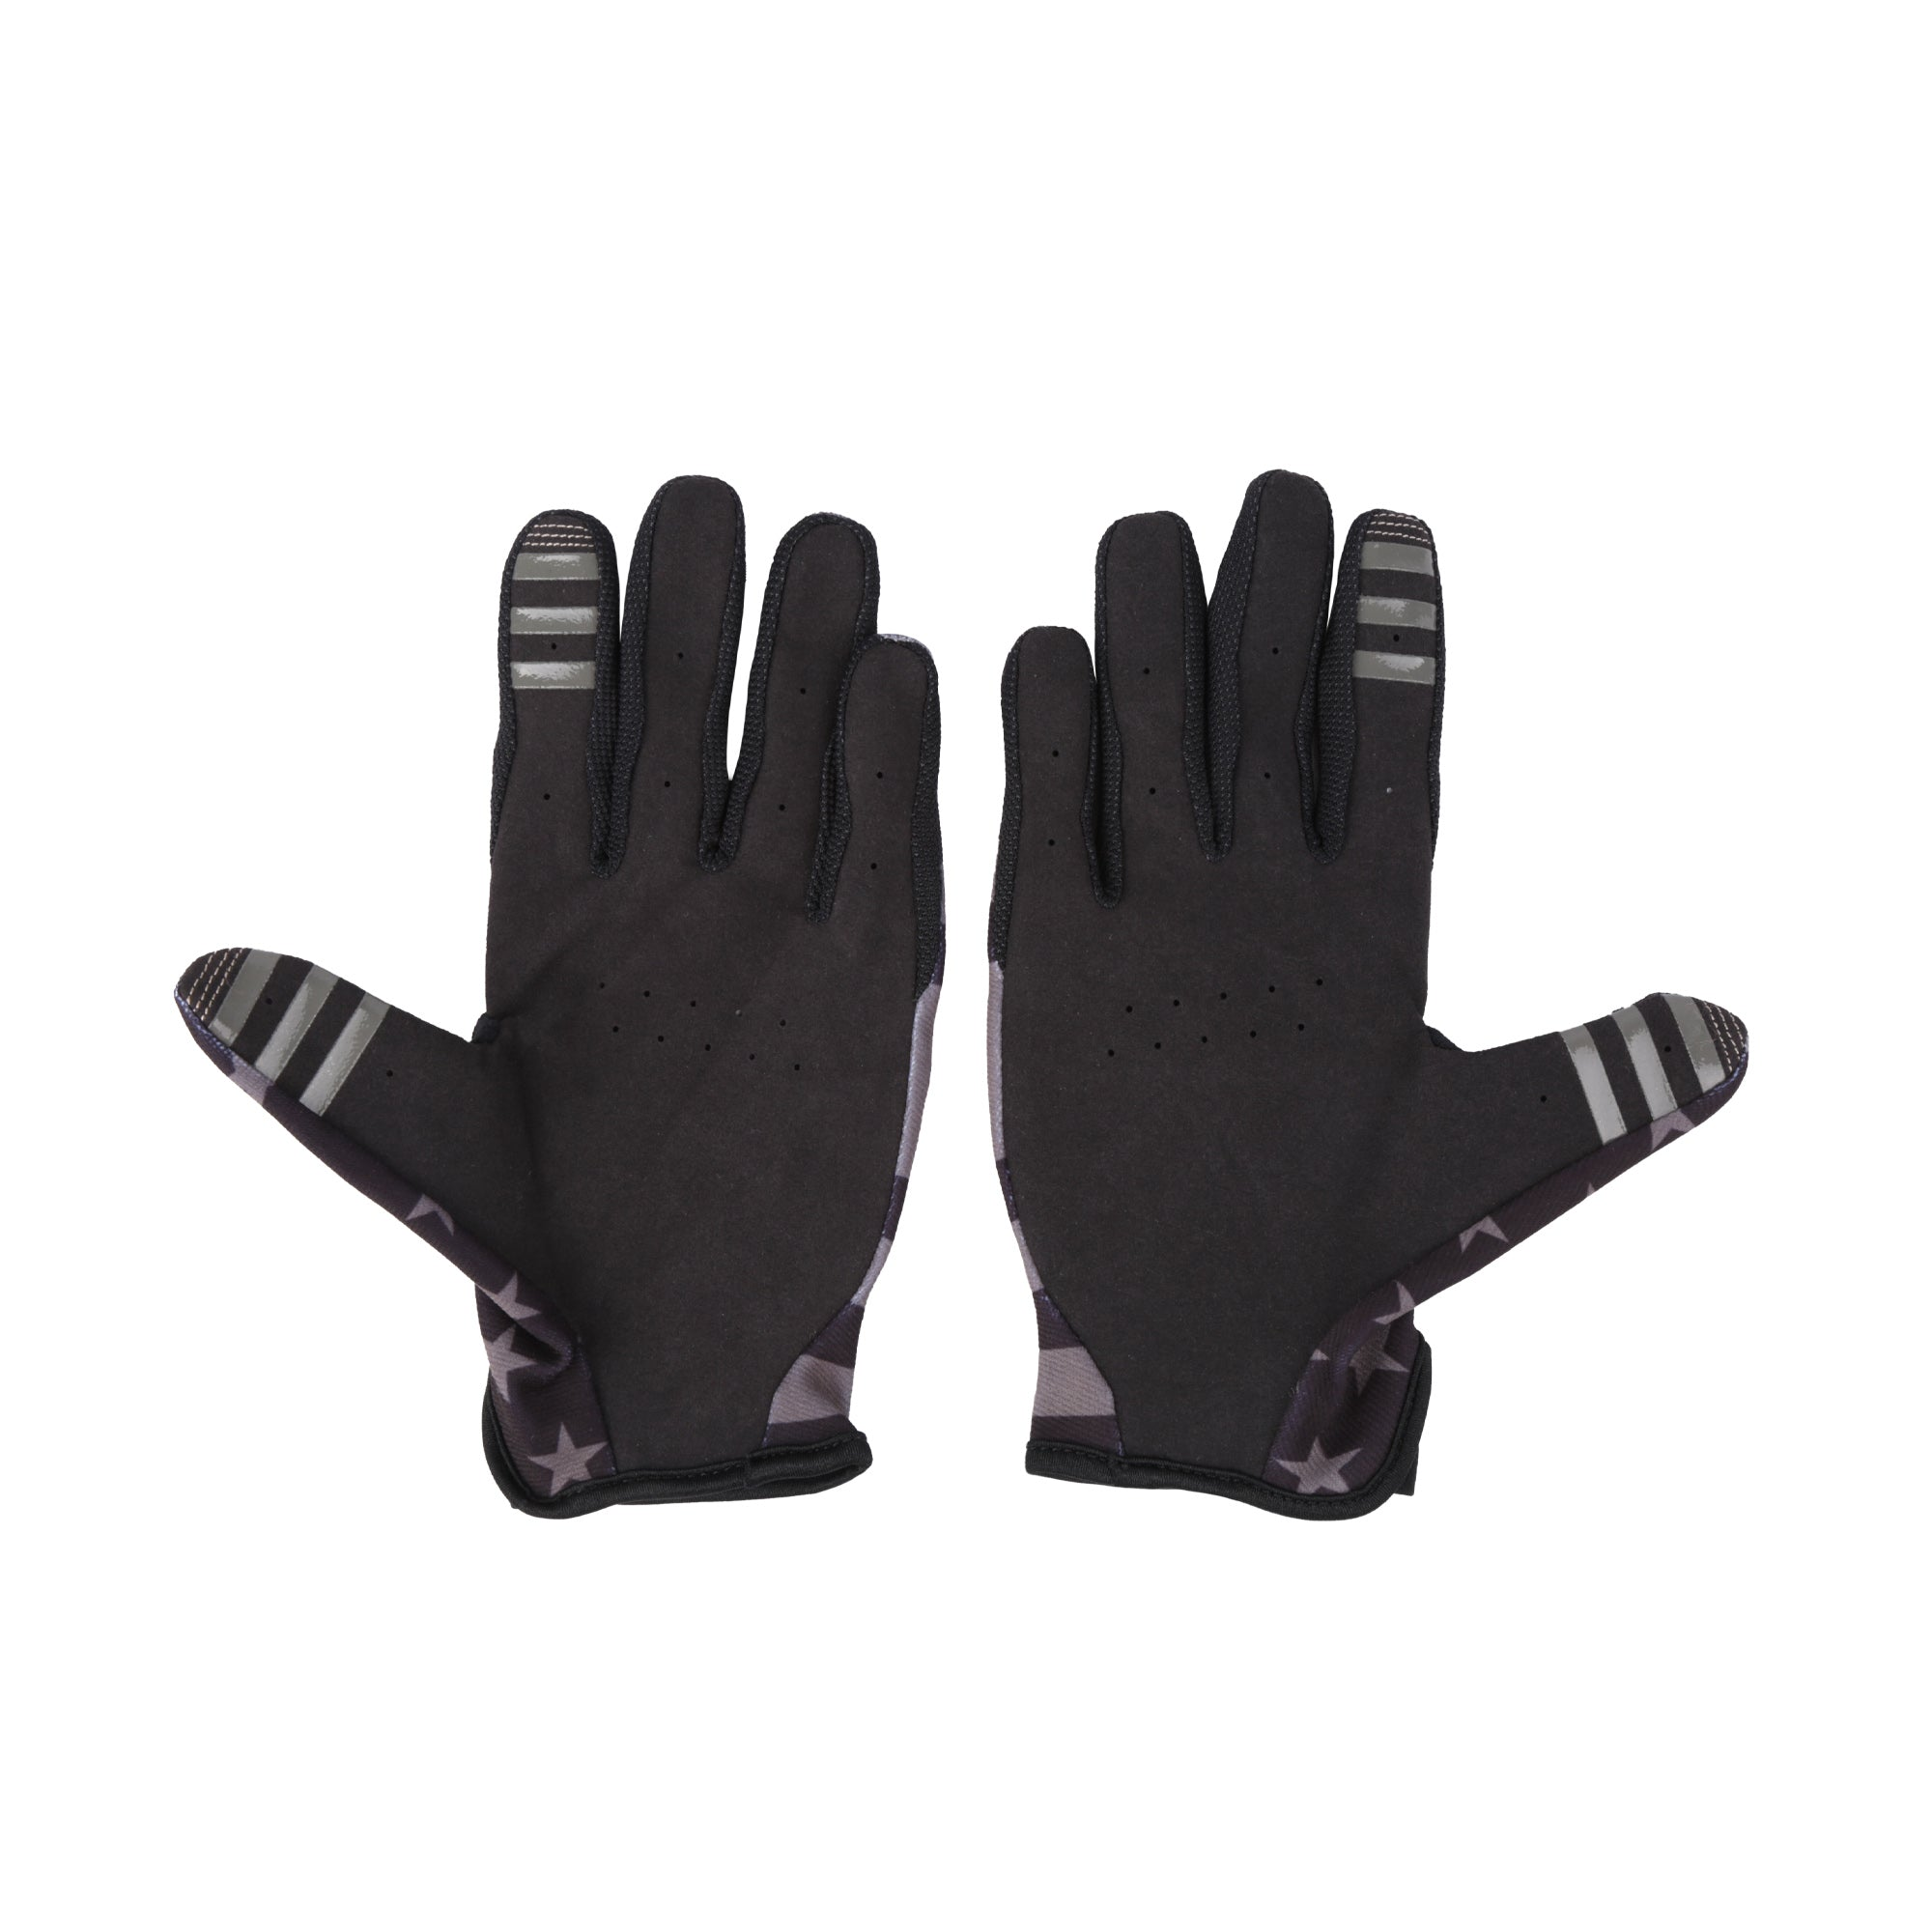 Ridgeline MTB Gloves - Black Flag